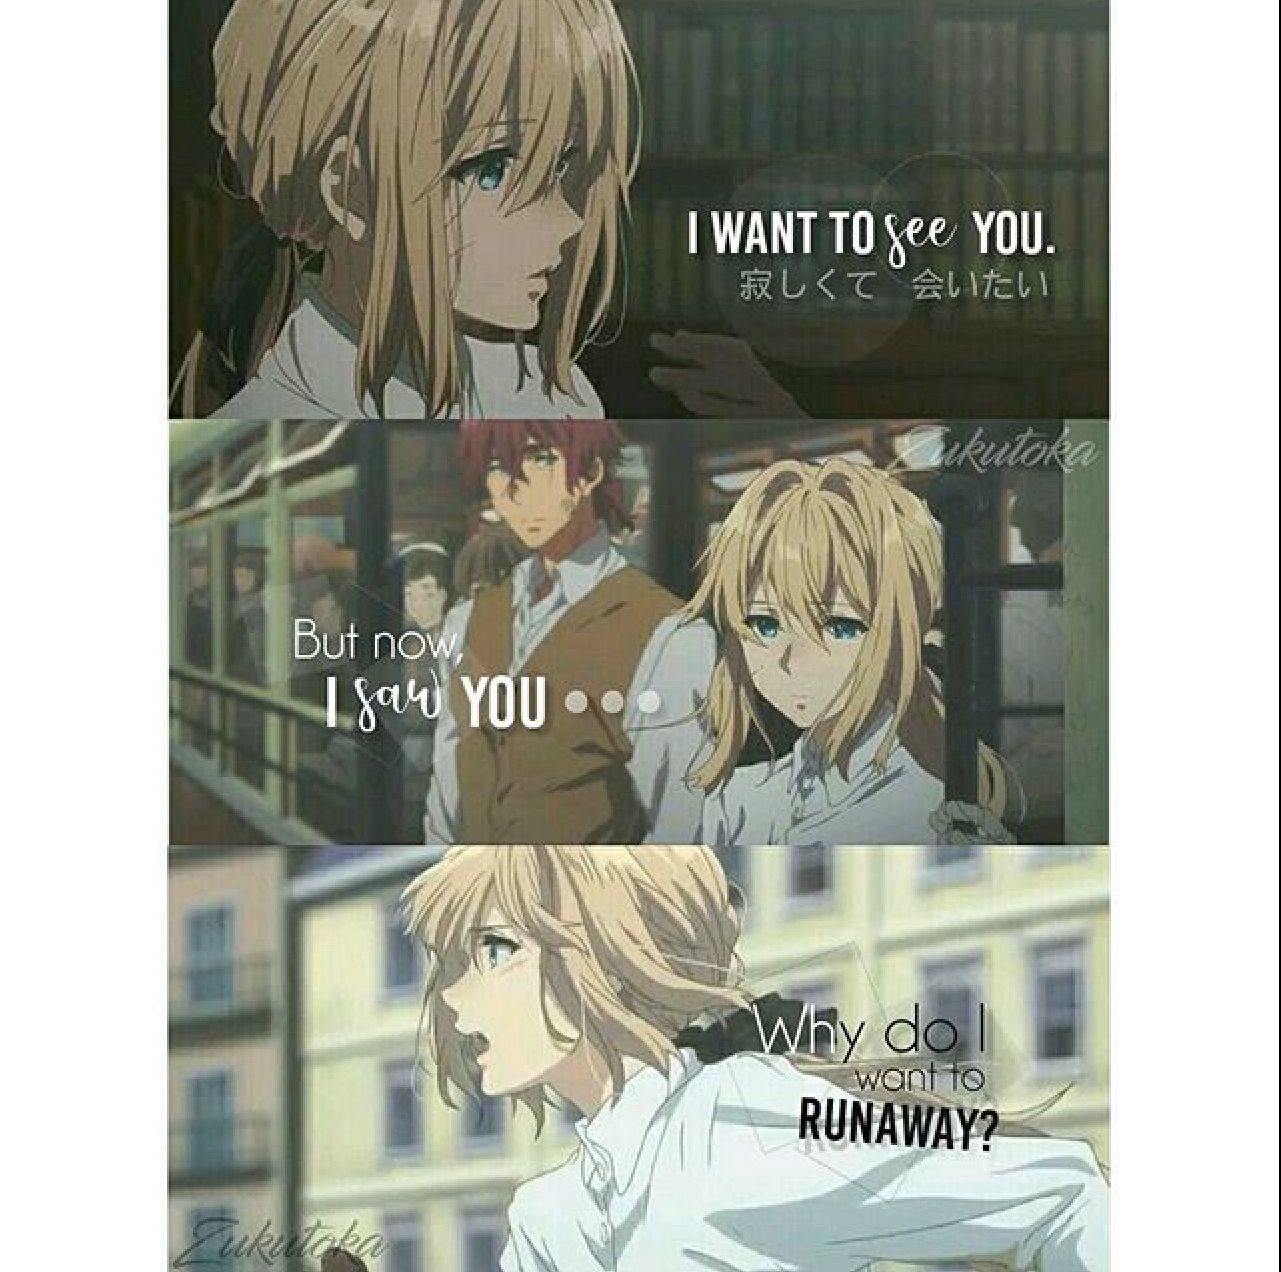 Violet Evergarden Anime Quotes Anime Quotes Inspirational Anime Love Quotes